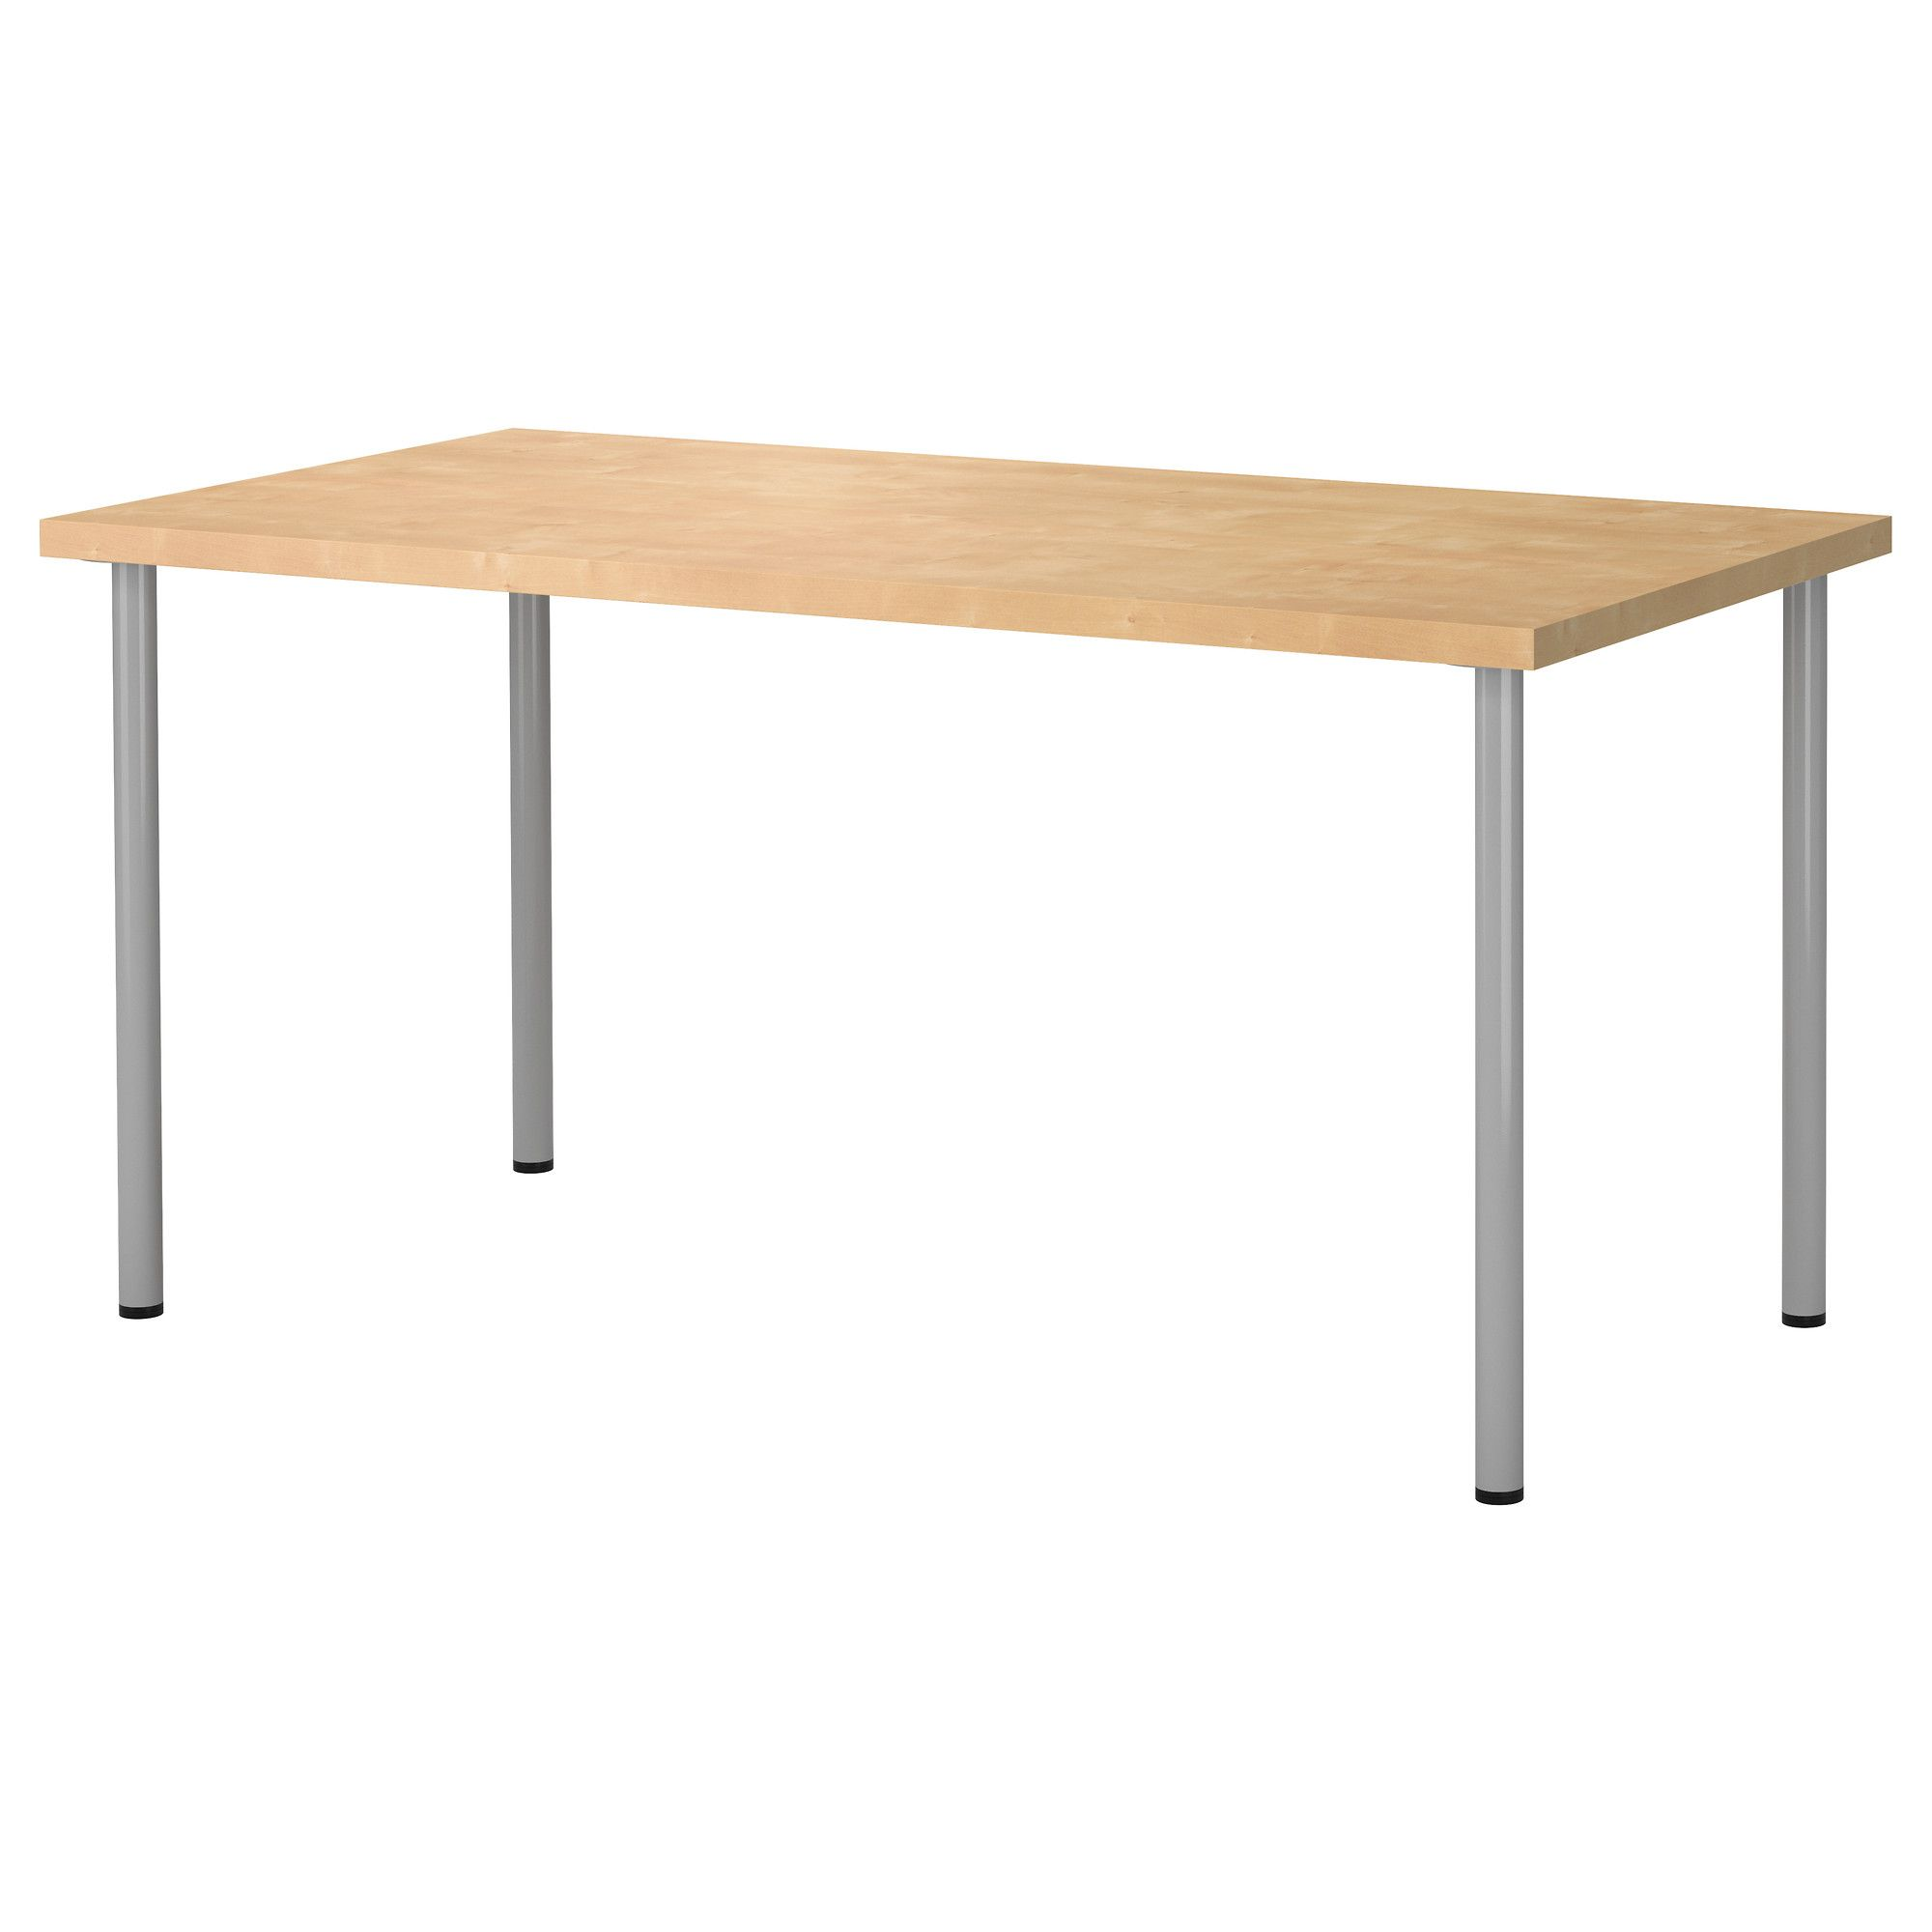 Ikea Linnmon Adils Table Birch Effect Silver Color Pre Drilled Leg Holes For Easy Embly Adjule Feet Allow You To Level The On Uneven